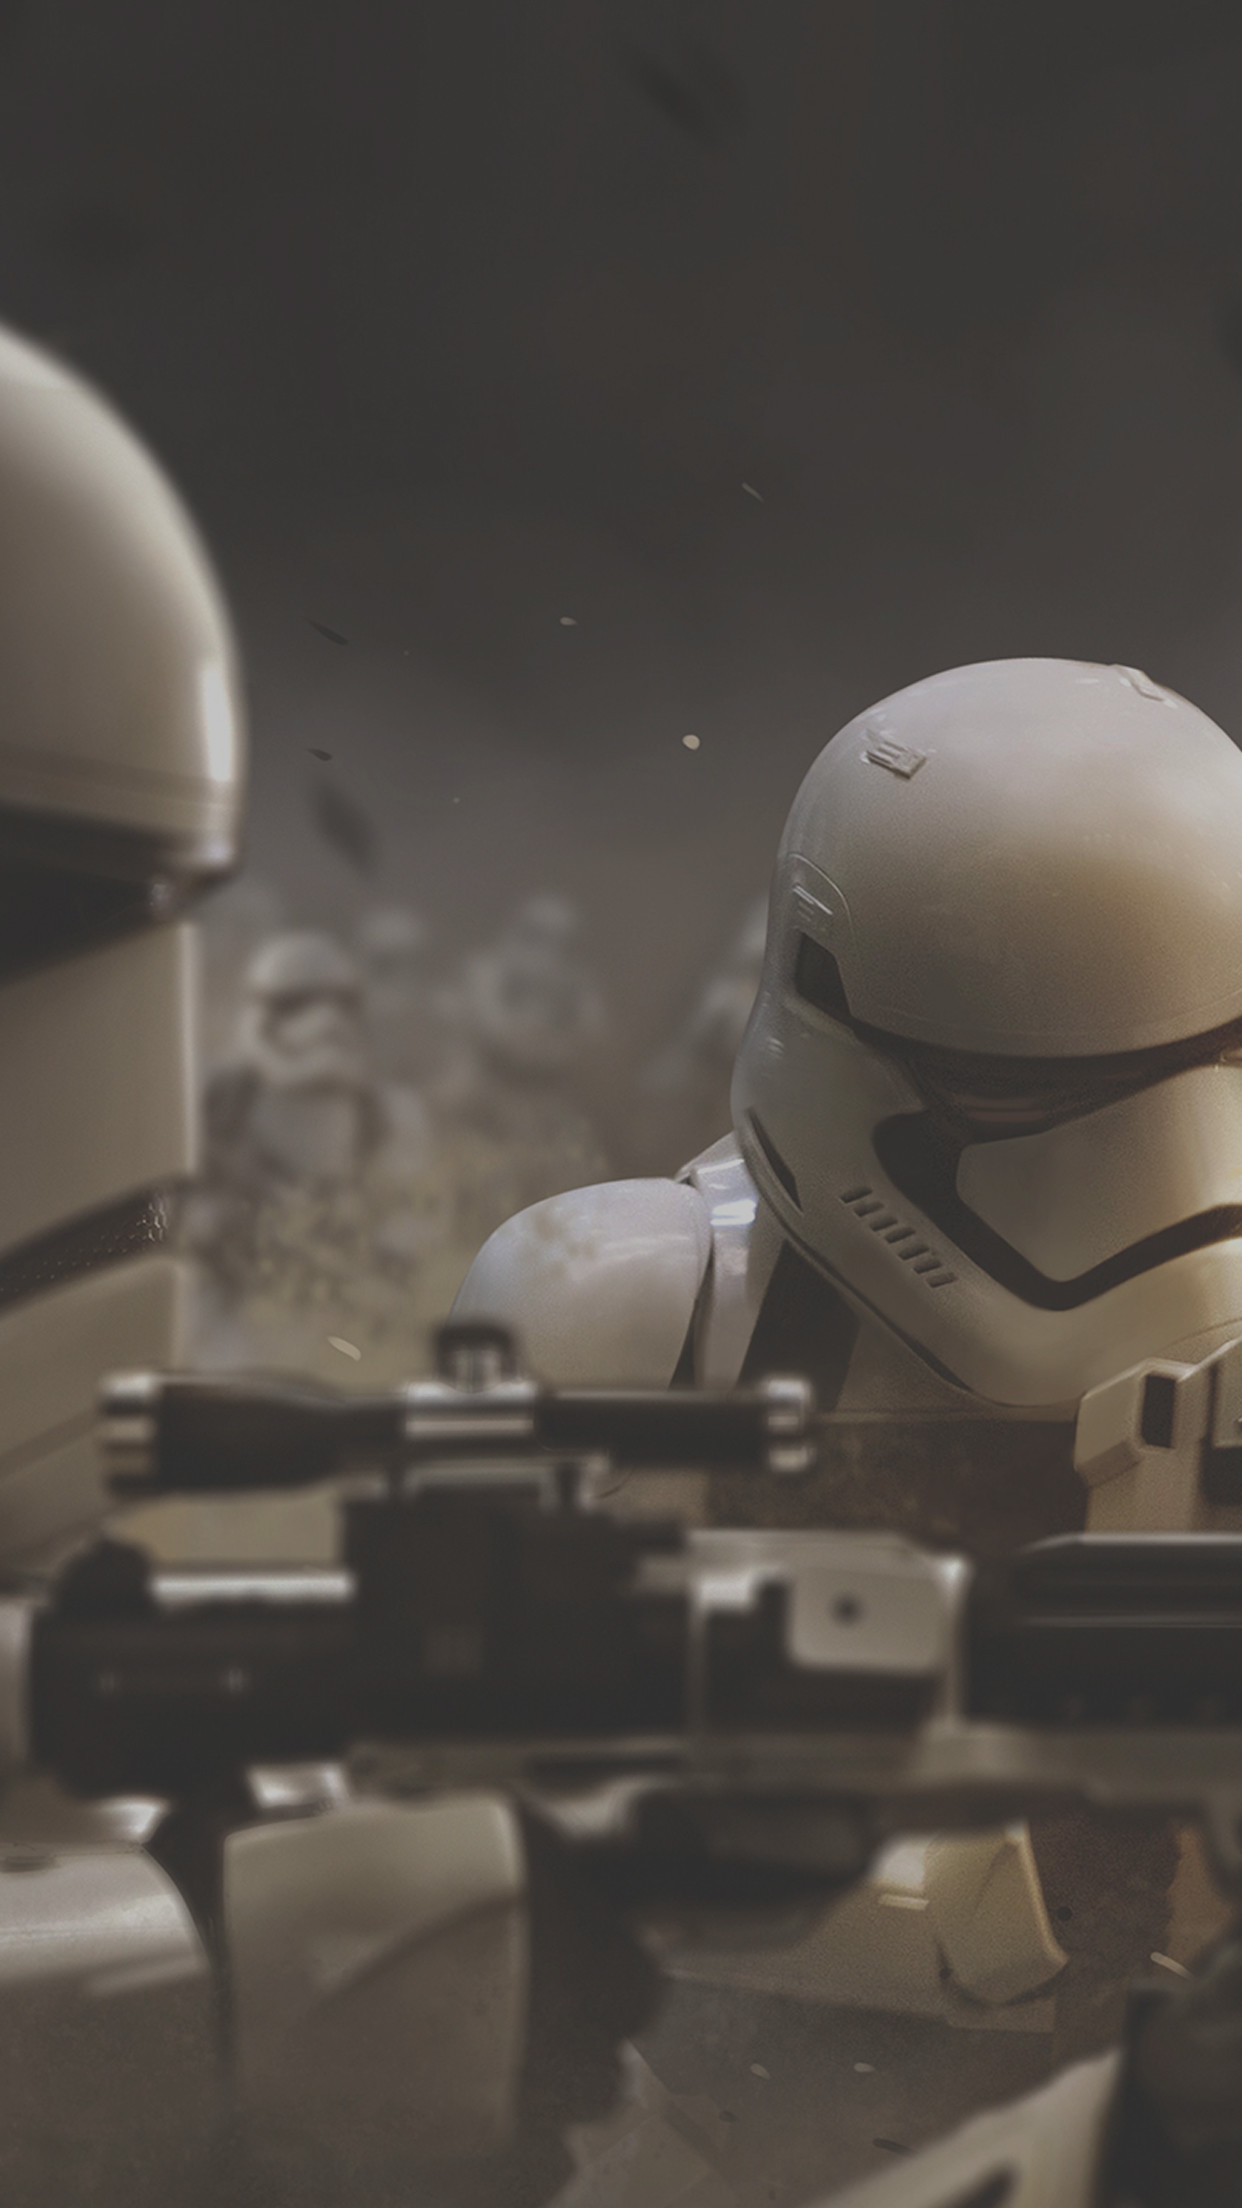 Res: 1242x2208, Star-Wars-The-Force-Awakens-Stormtrooper-Wallpaper-iDeviceArt